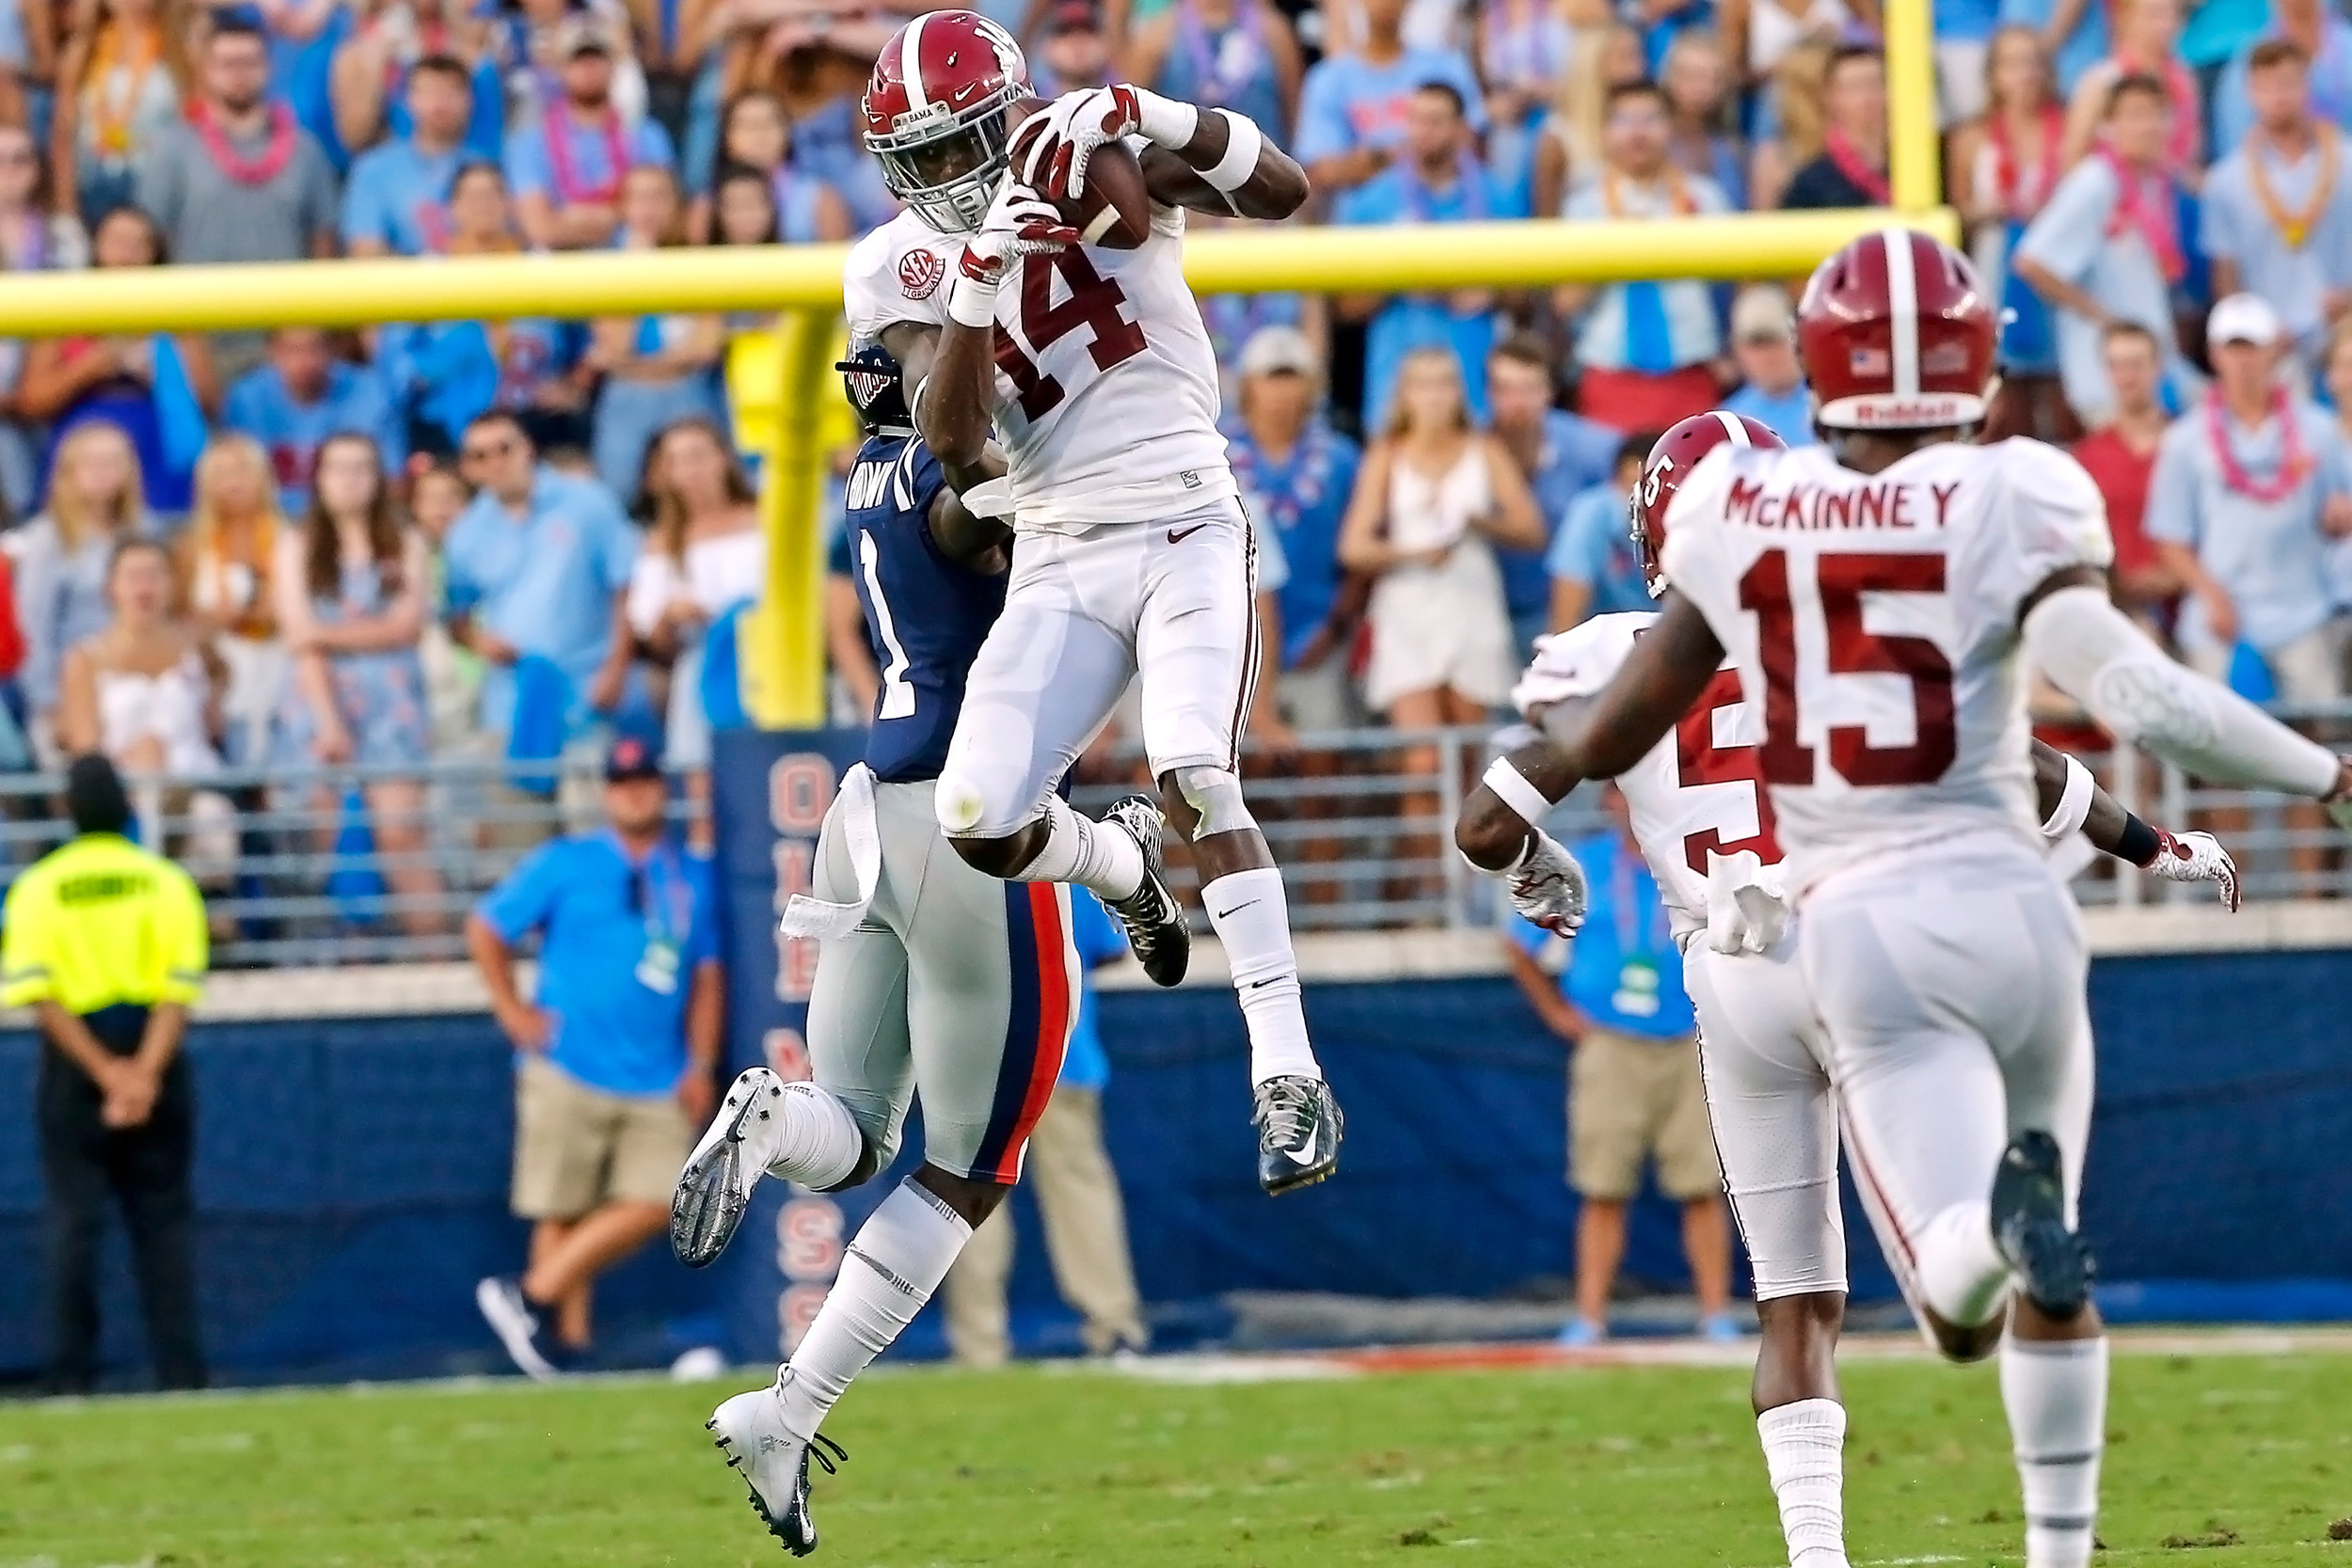 Alabama Crimson Tide defensive back Deionte Thompson (14) picks off a pass during the game between the University of Alabama and Ole Miss at Vaught-Hemingway Stadium. Jason Clark / Daily Mountain Eagle